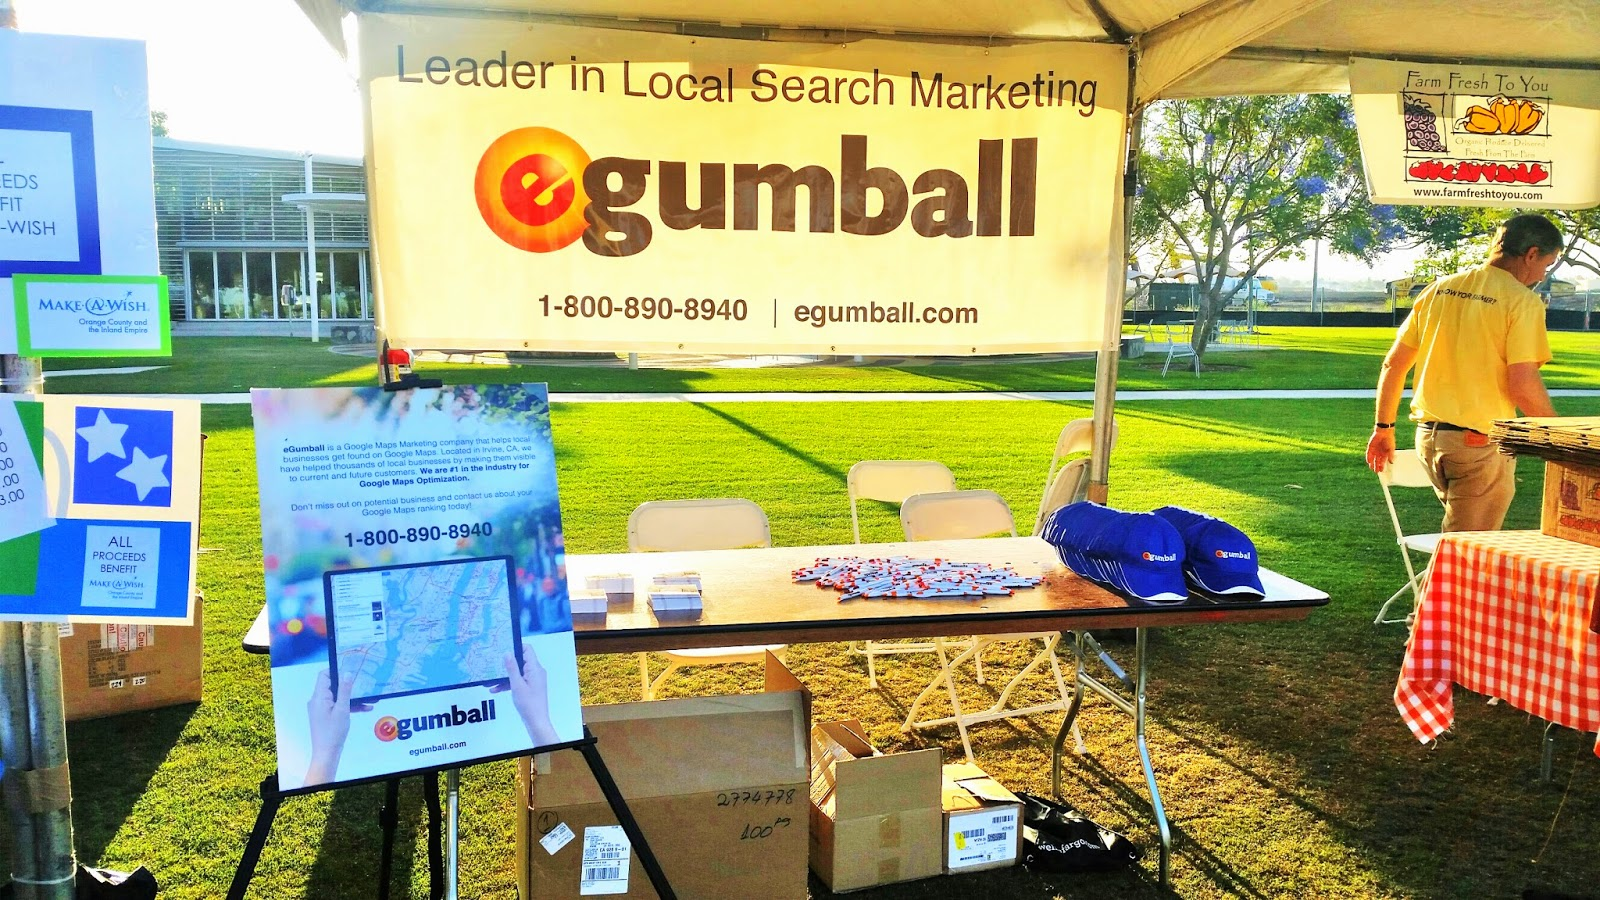 An eGumball, Inc. banner with the company's phone number and a table featuring business cards, pens, and eGumball hats.